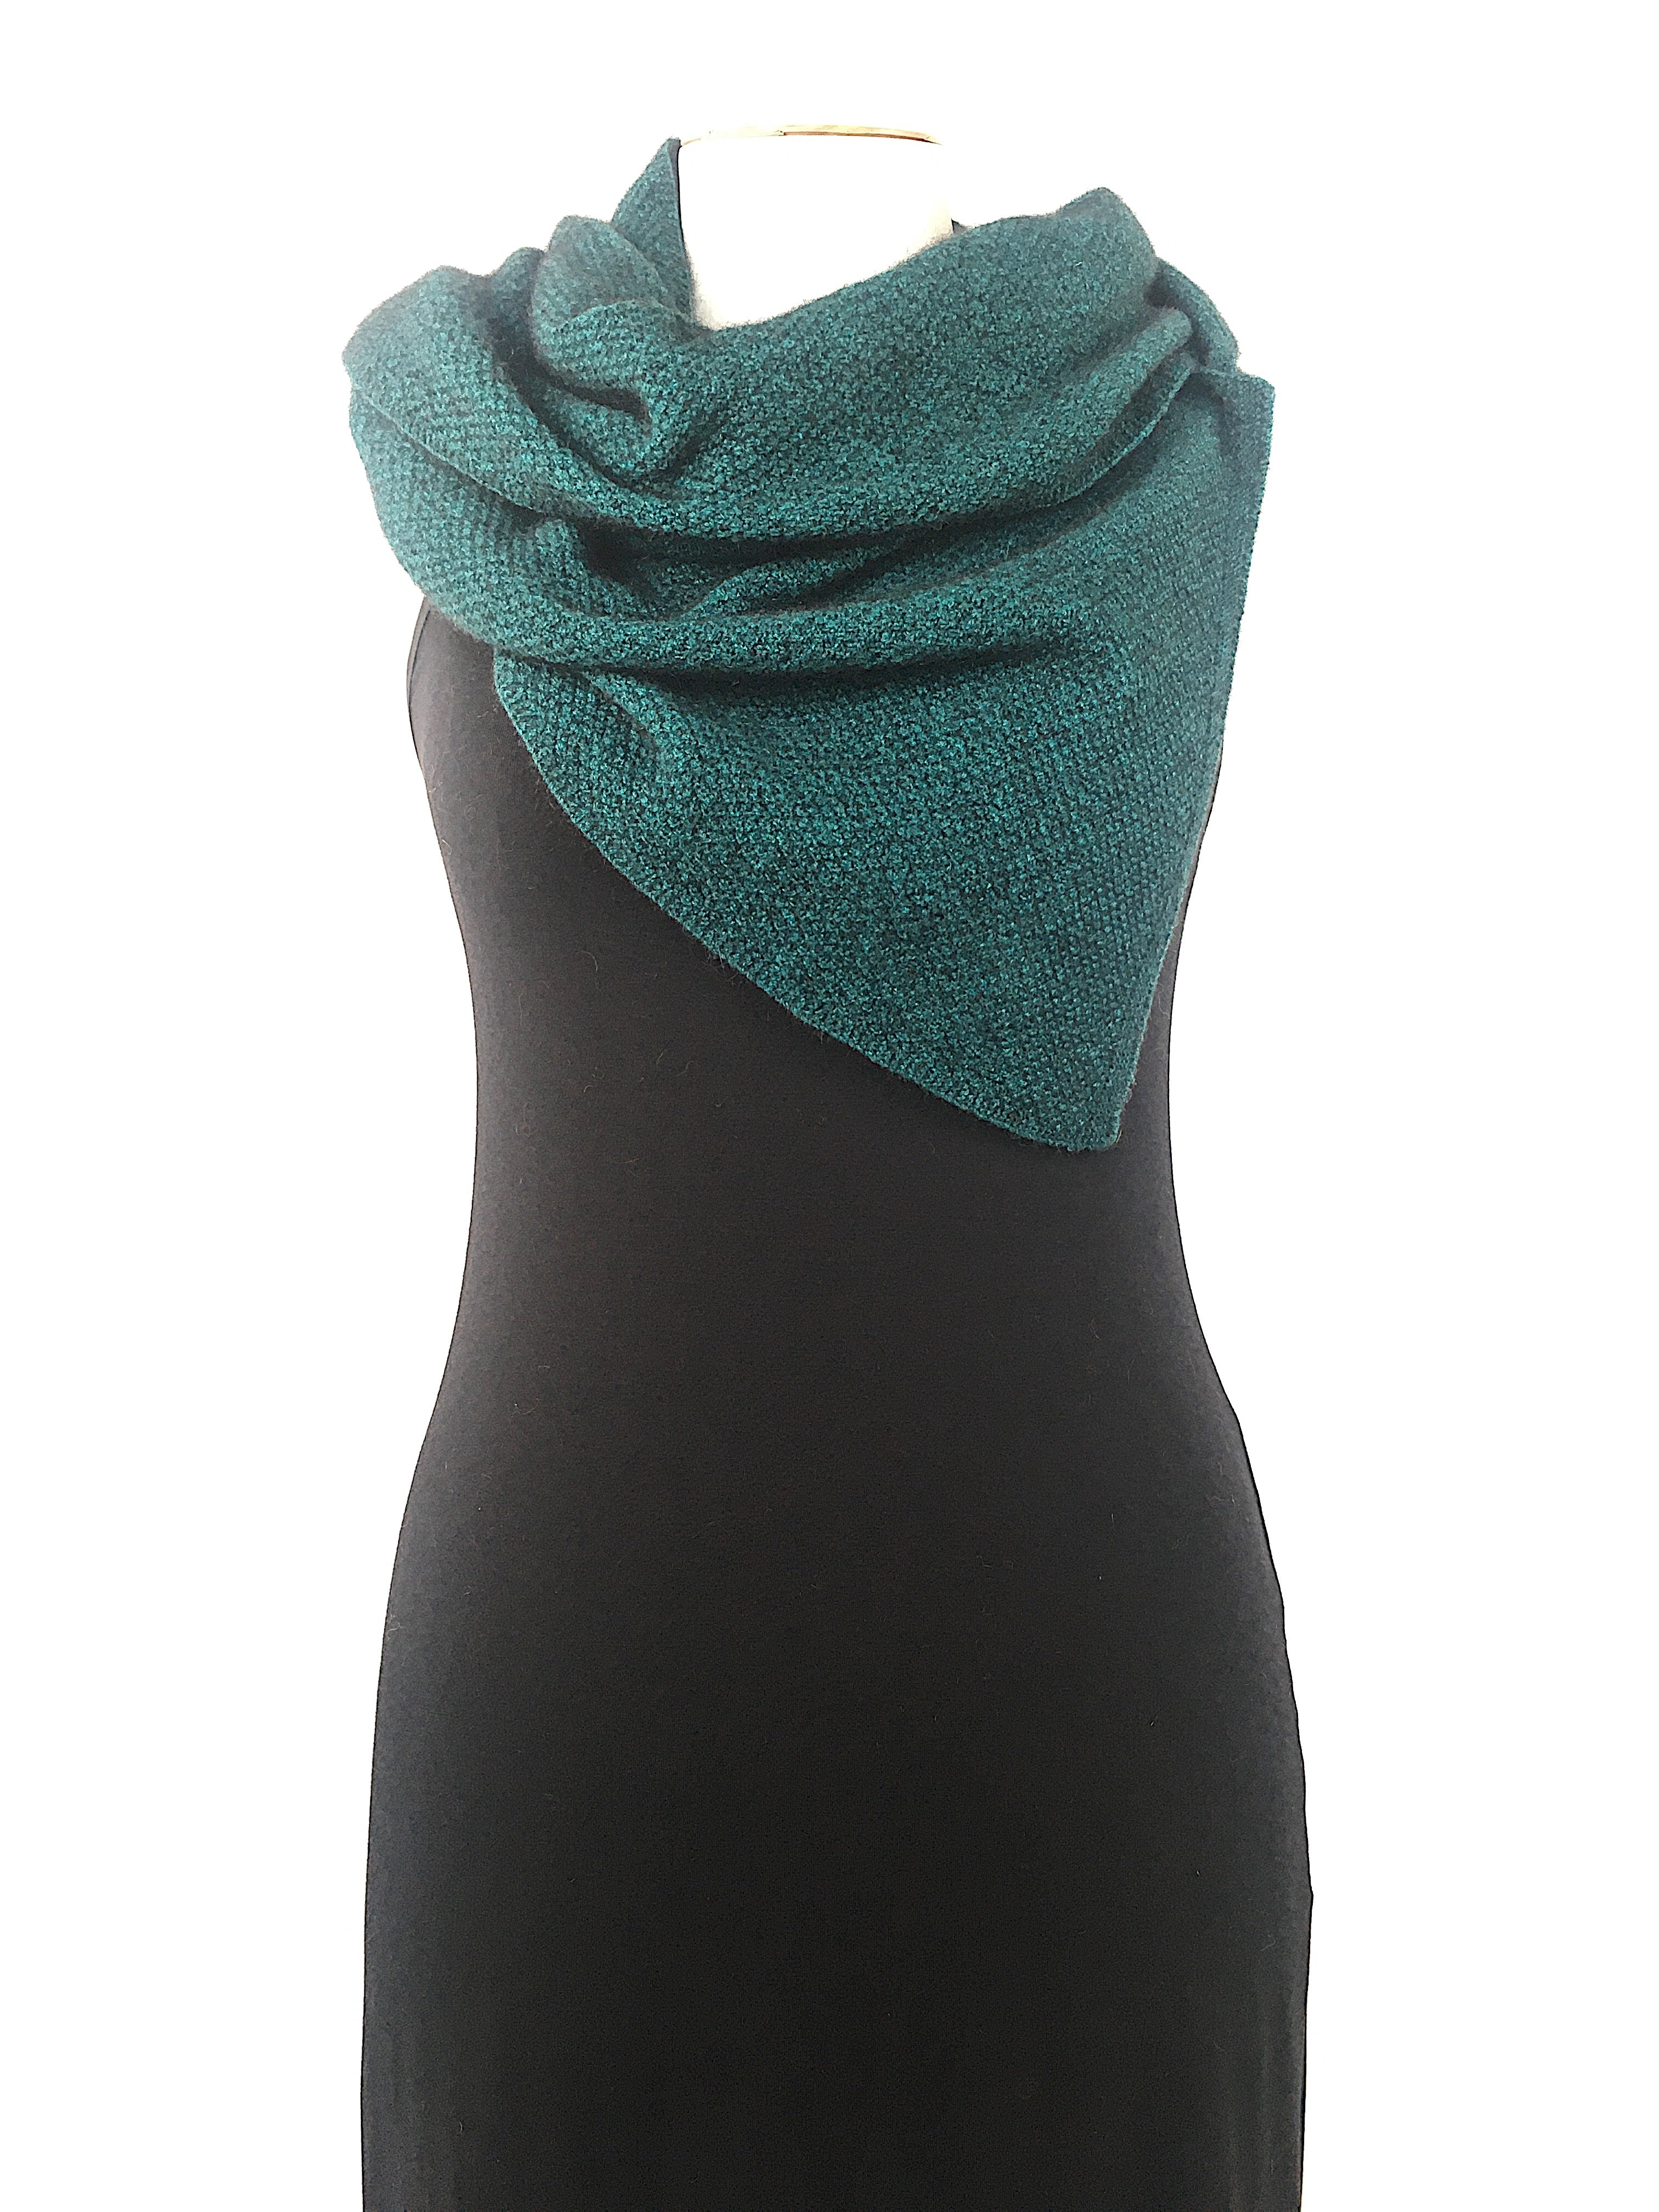 Noble Wilde Moss Monti Scarf - Paua